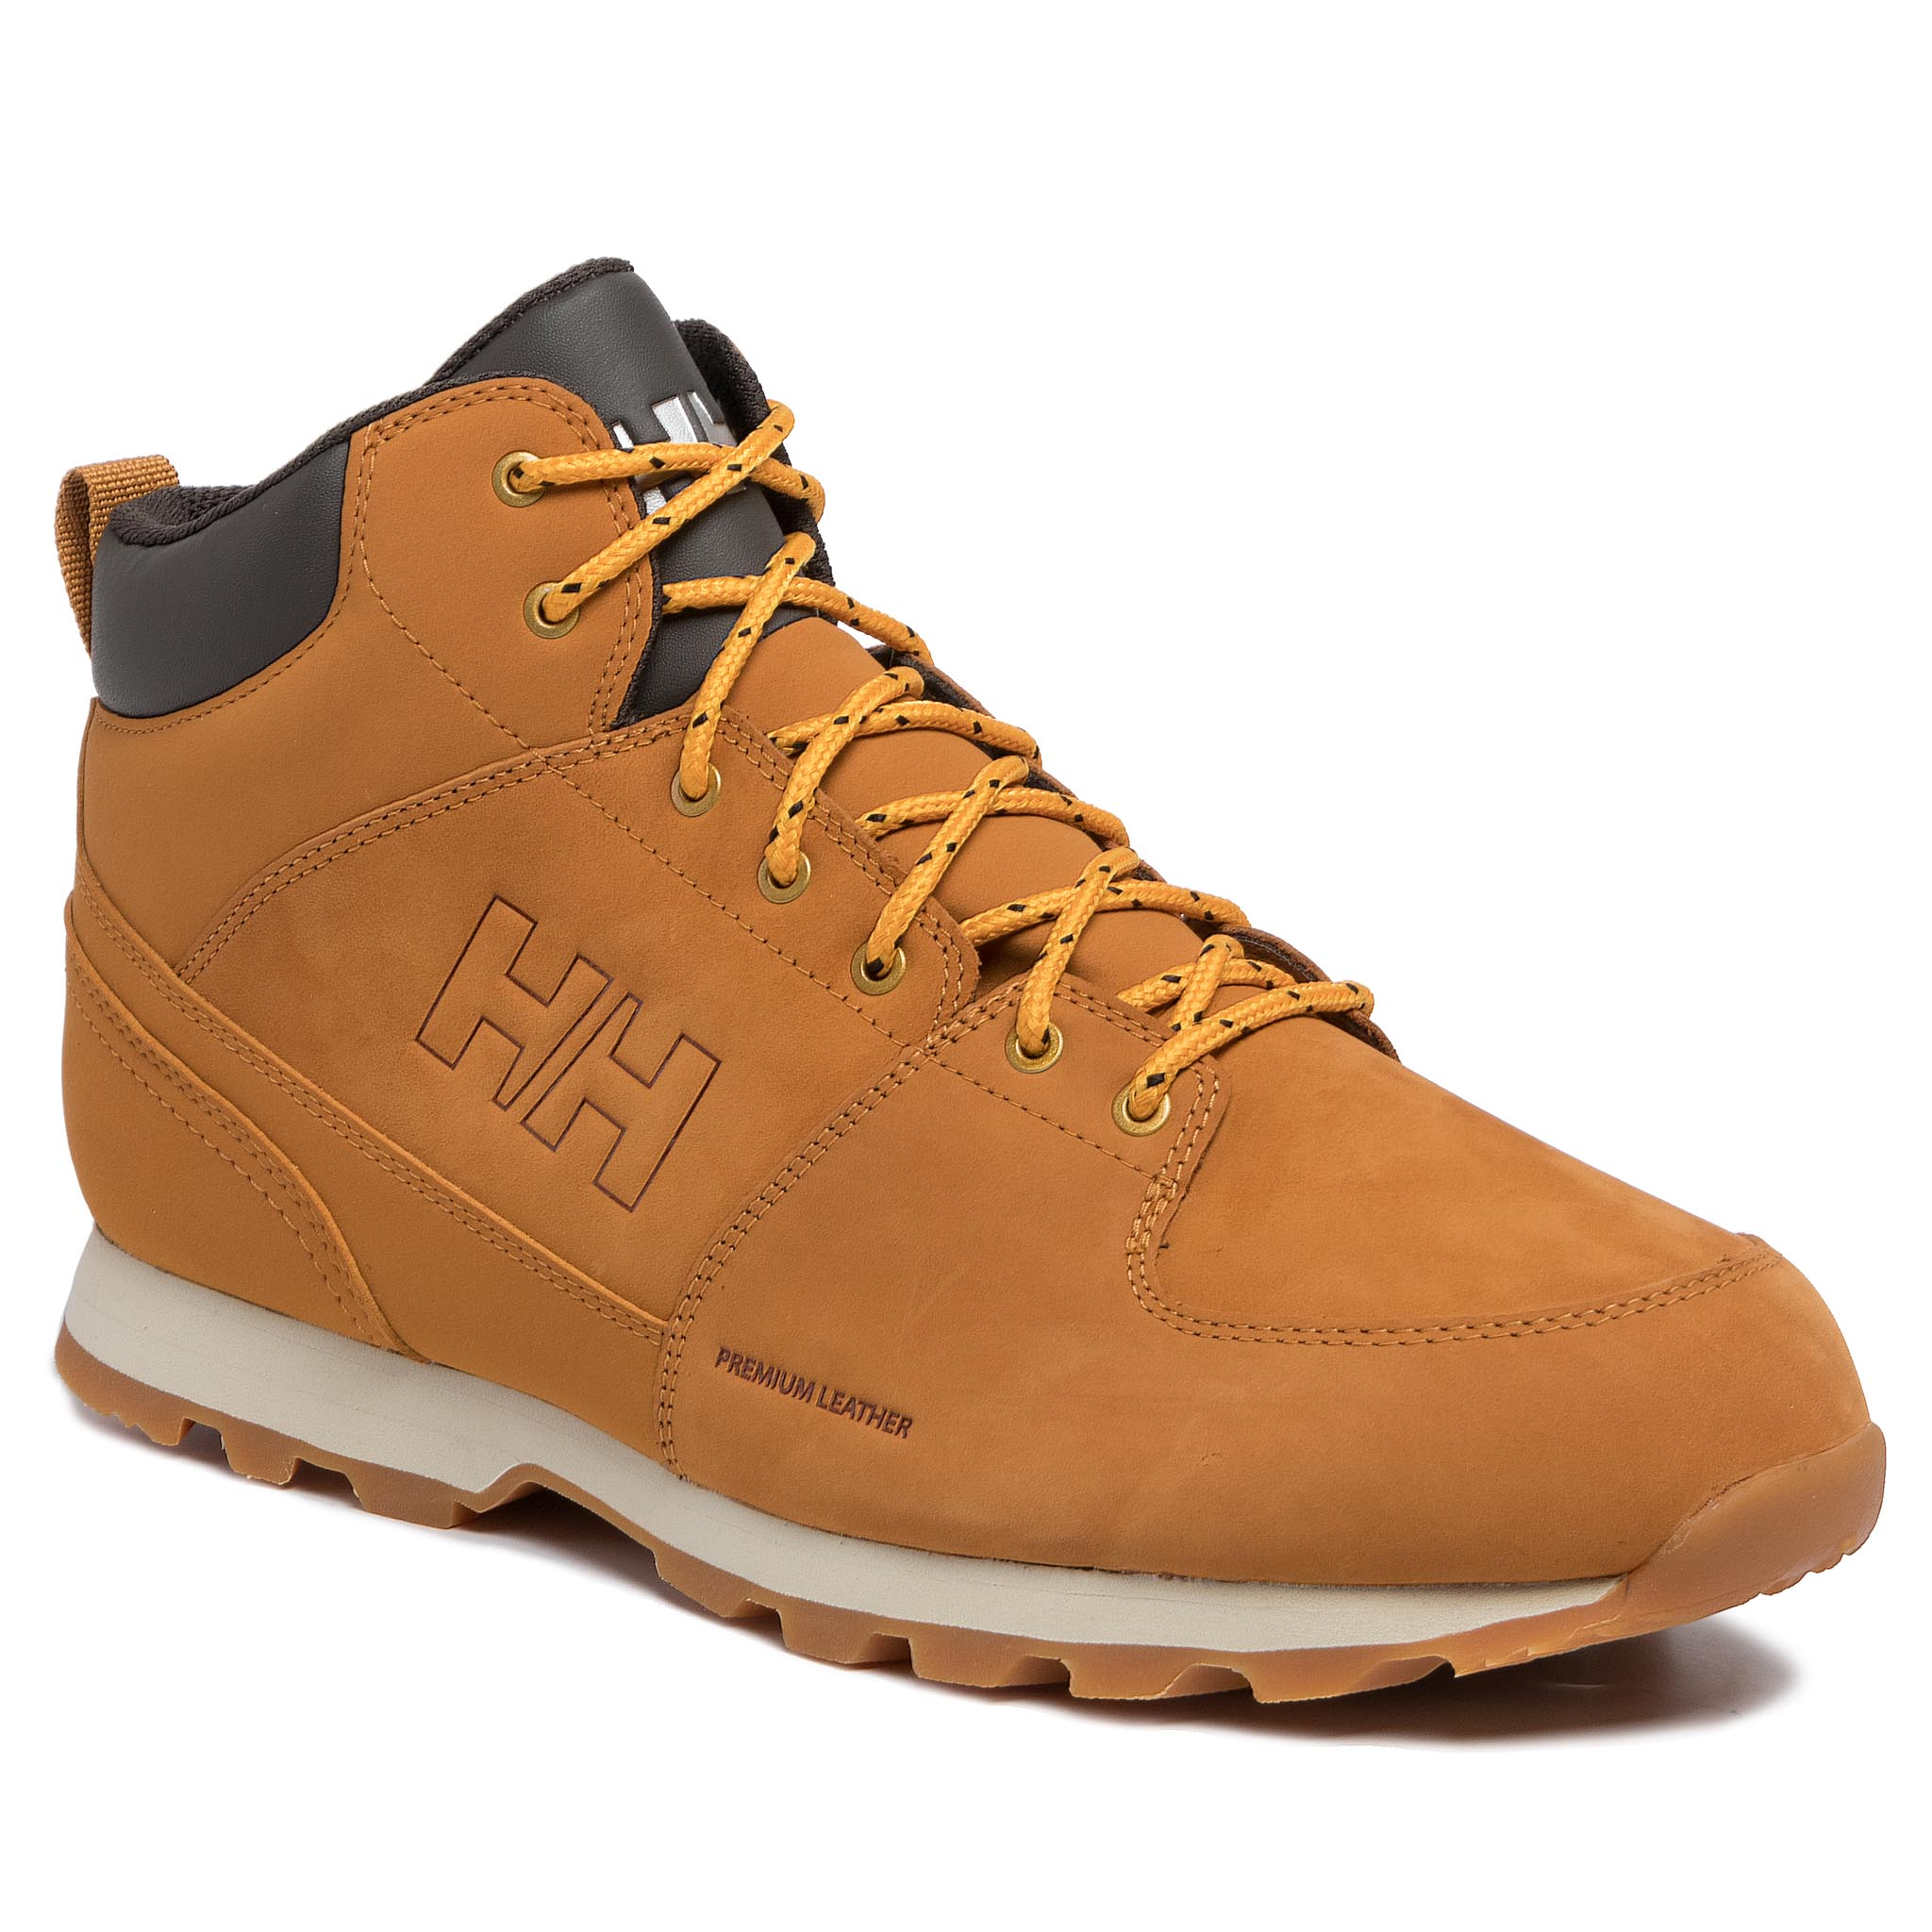 Trekkings HELLY HANSEN - Tsuga 114-54.724 New Wheat/Espresso/Natura/Metallic Silver